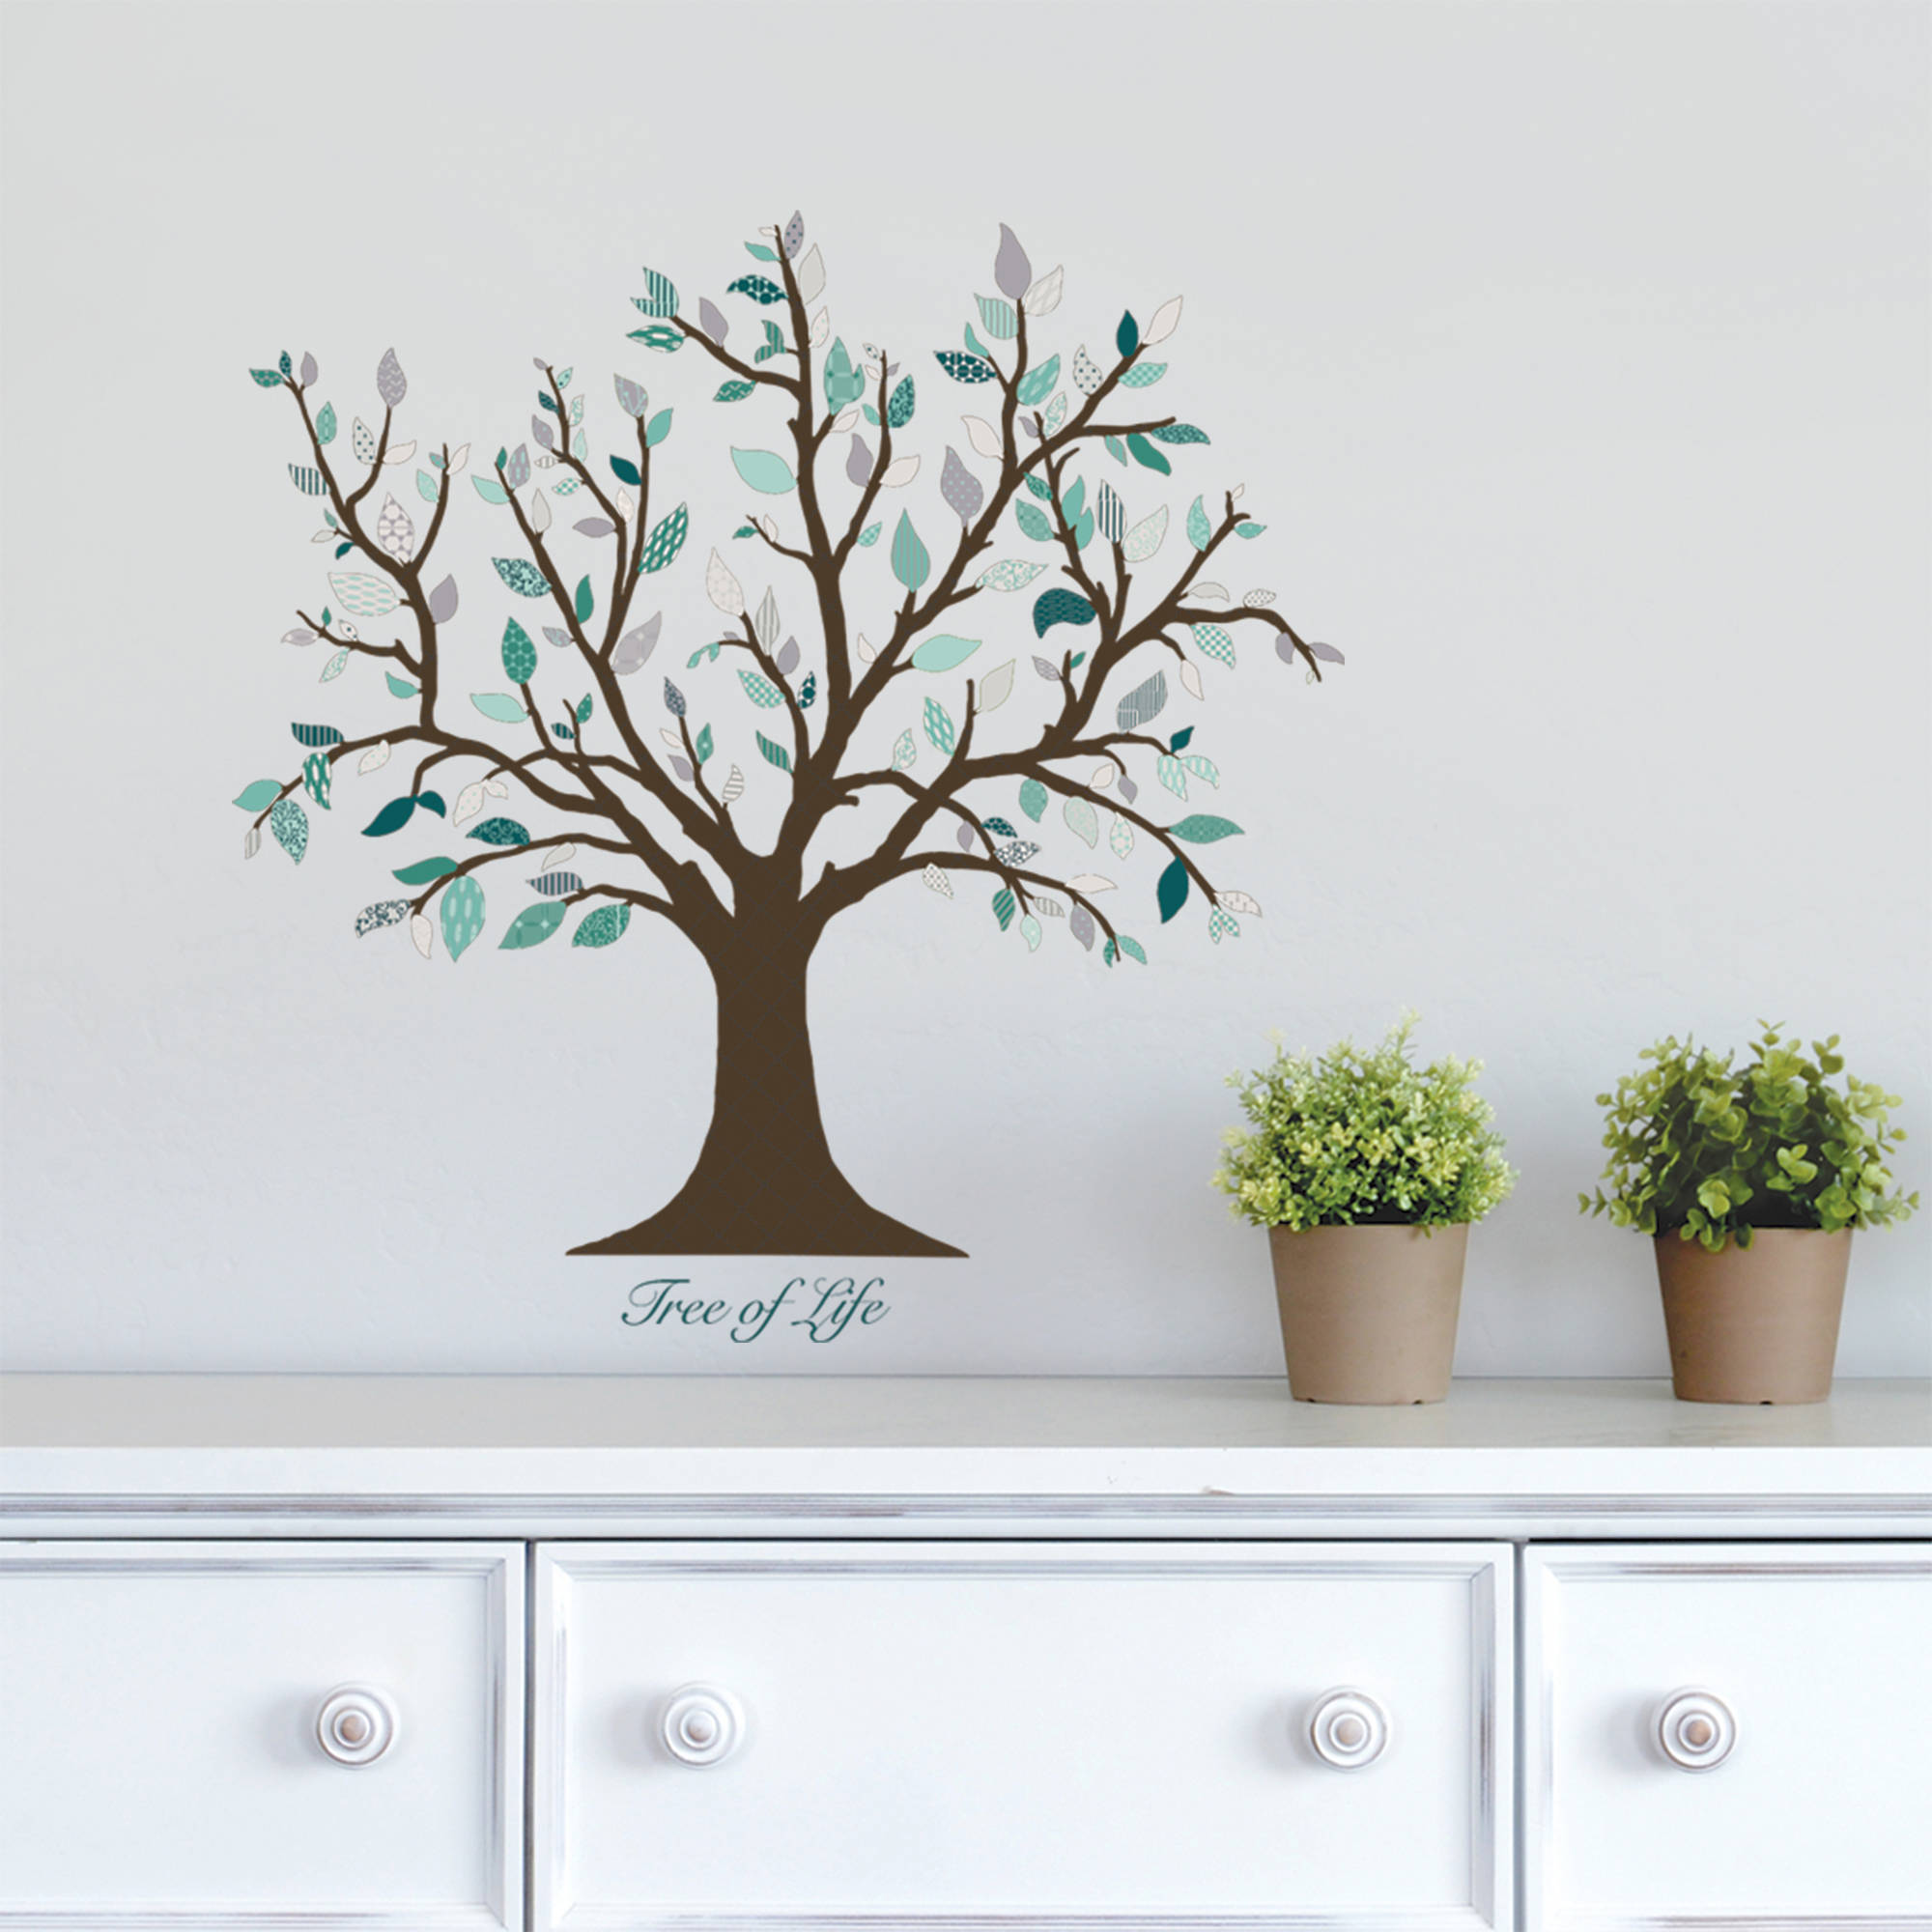 Merveilleux DCWV Vinyl Tree Of Life Wall Decal   Walmart.com